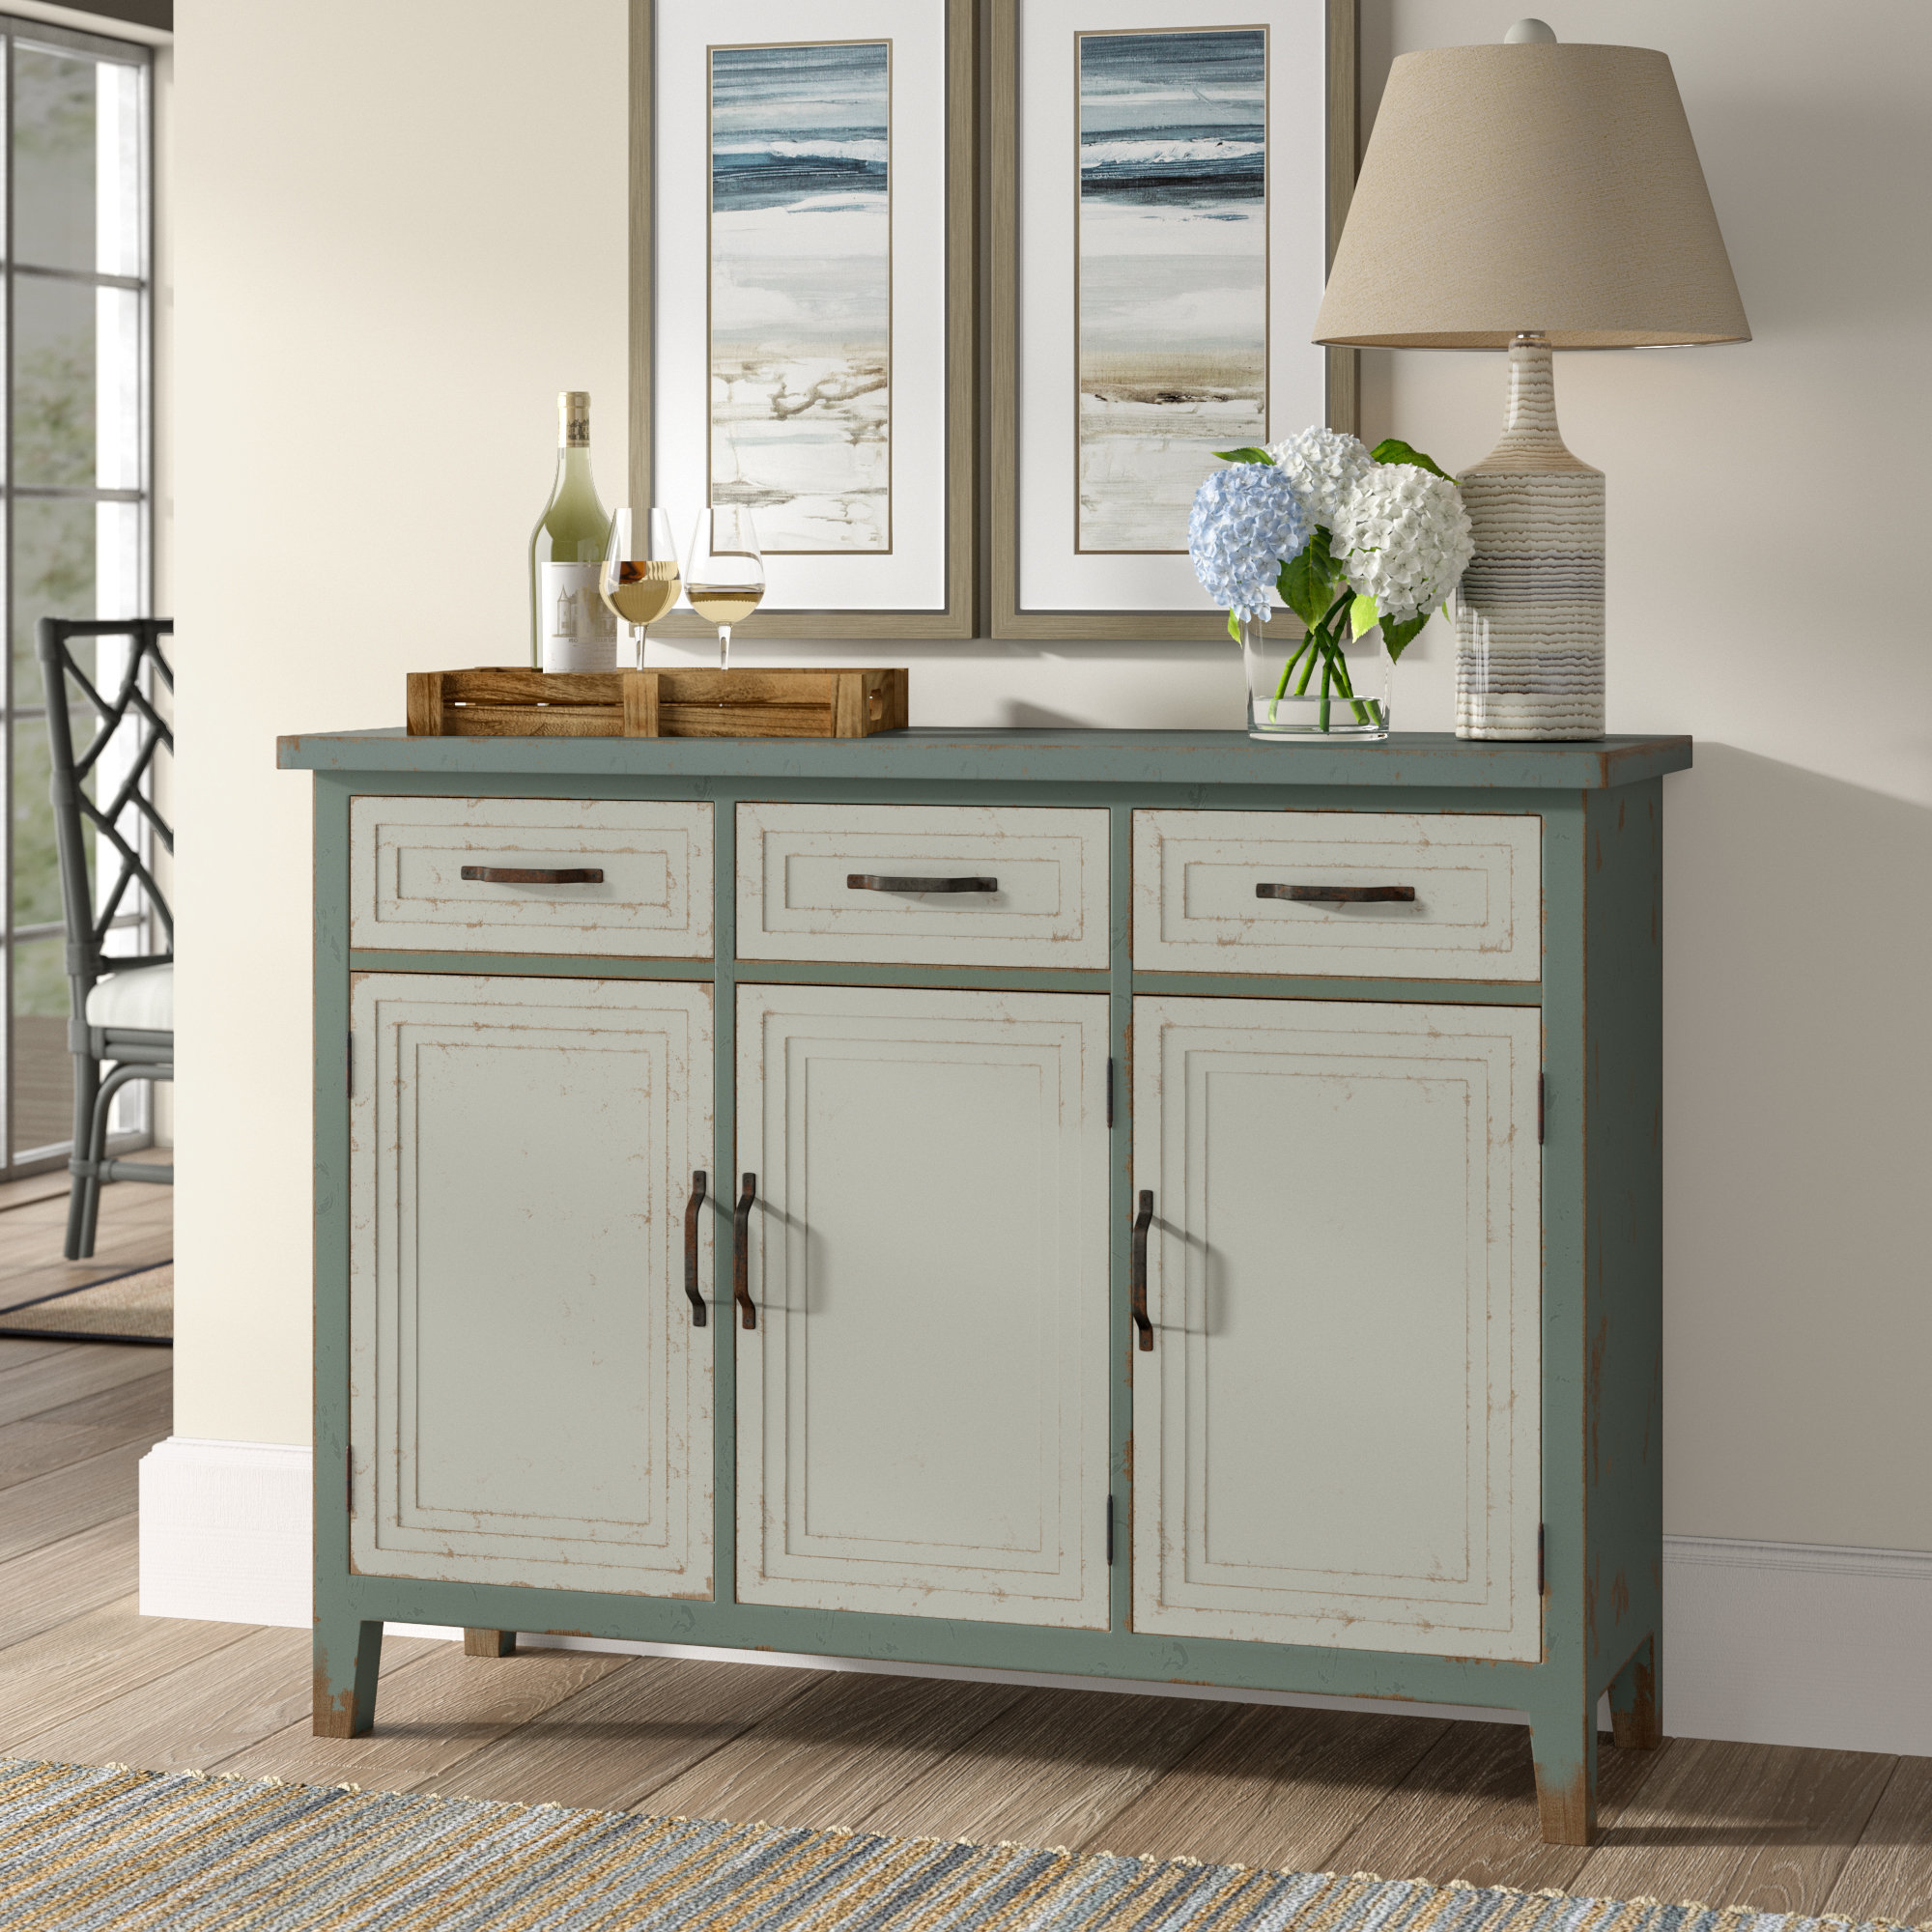 3 Drawer Credenza | Wayfair For Giulia 3 Drawer Credenzas (View 4 of 20)